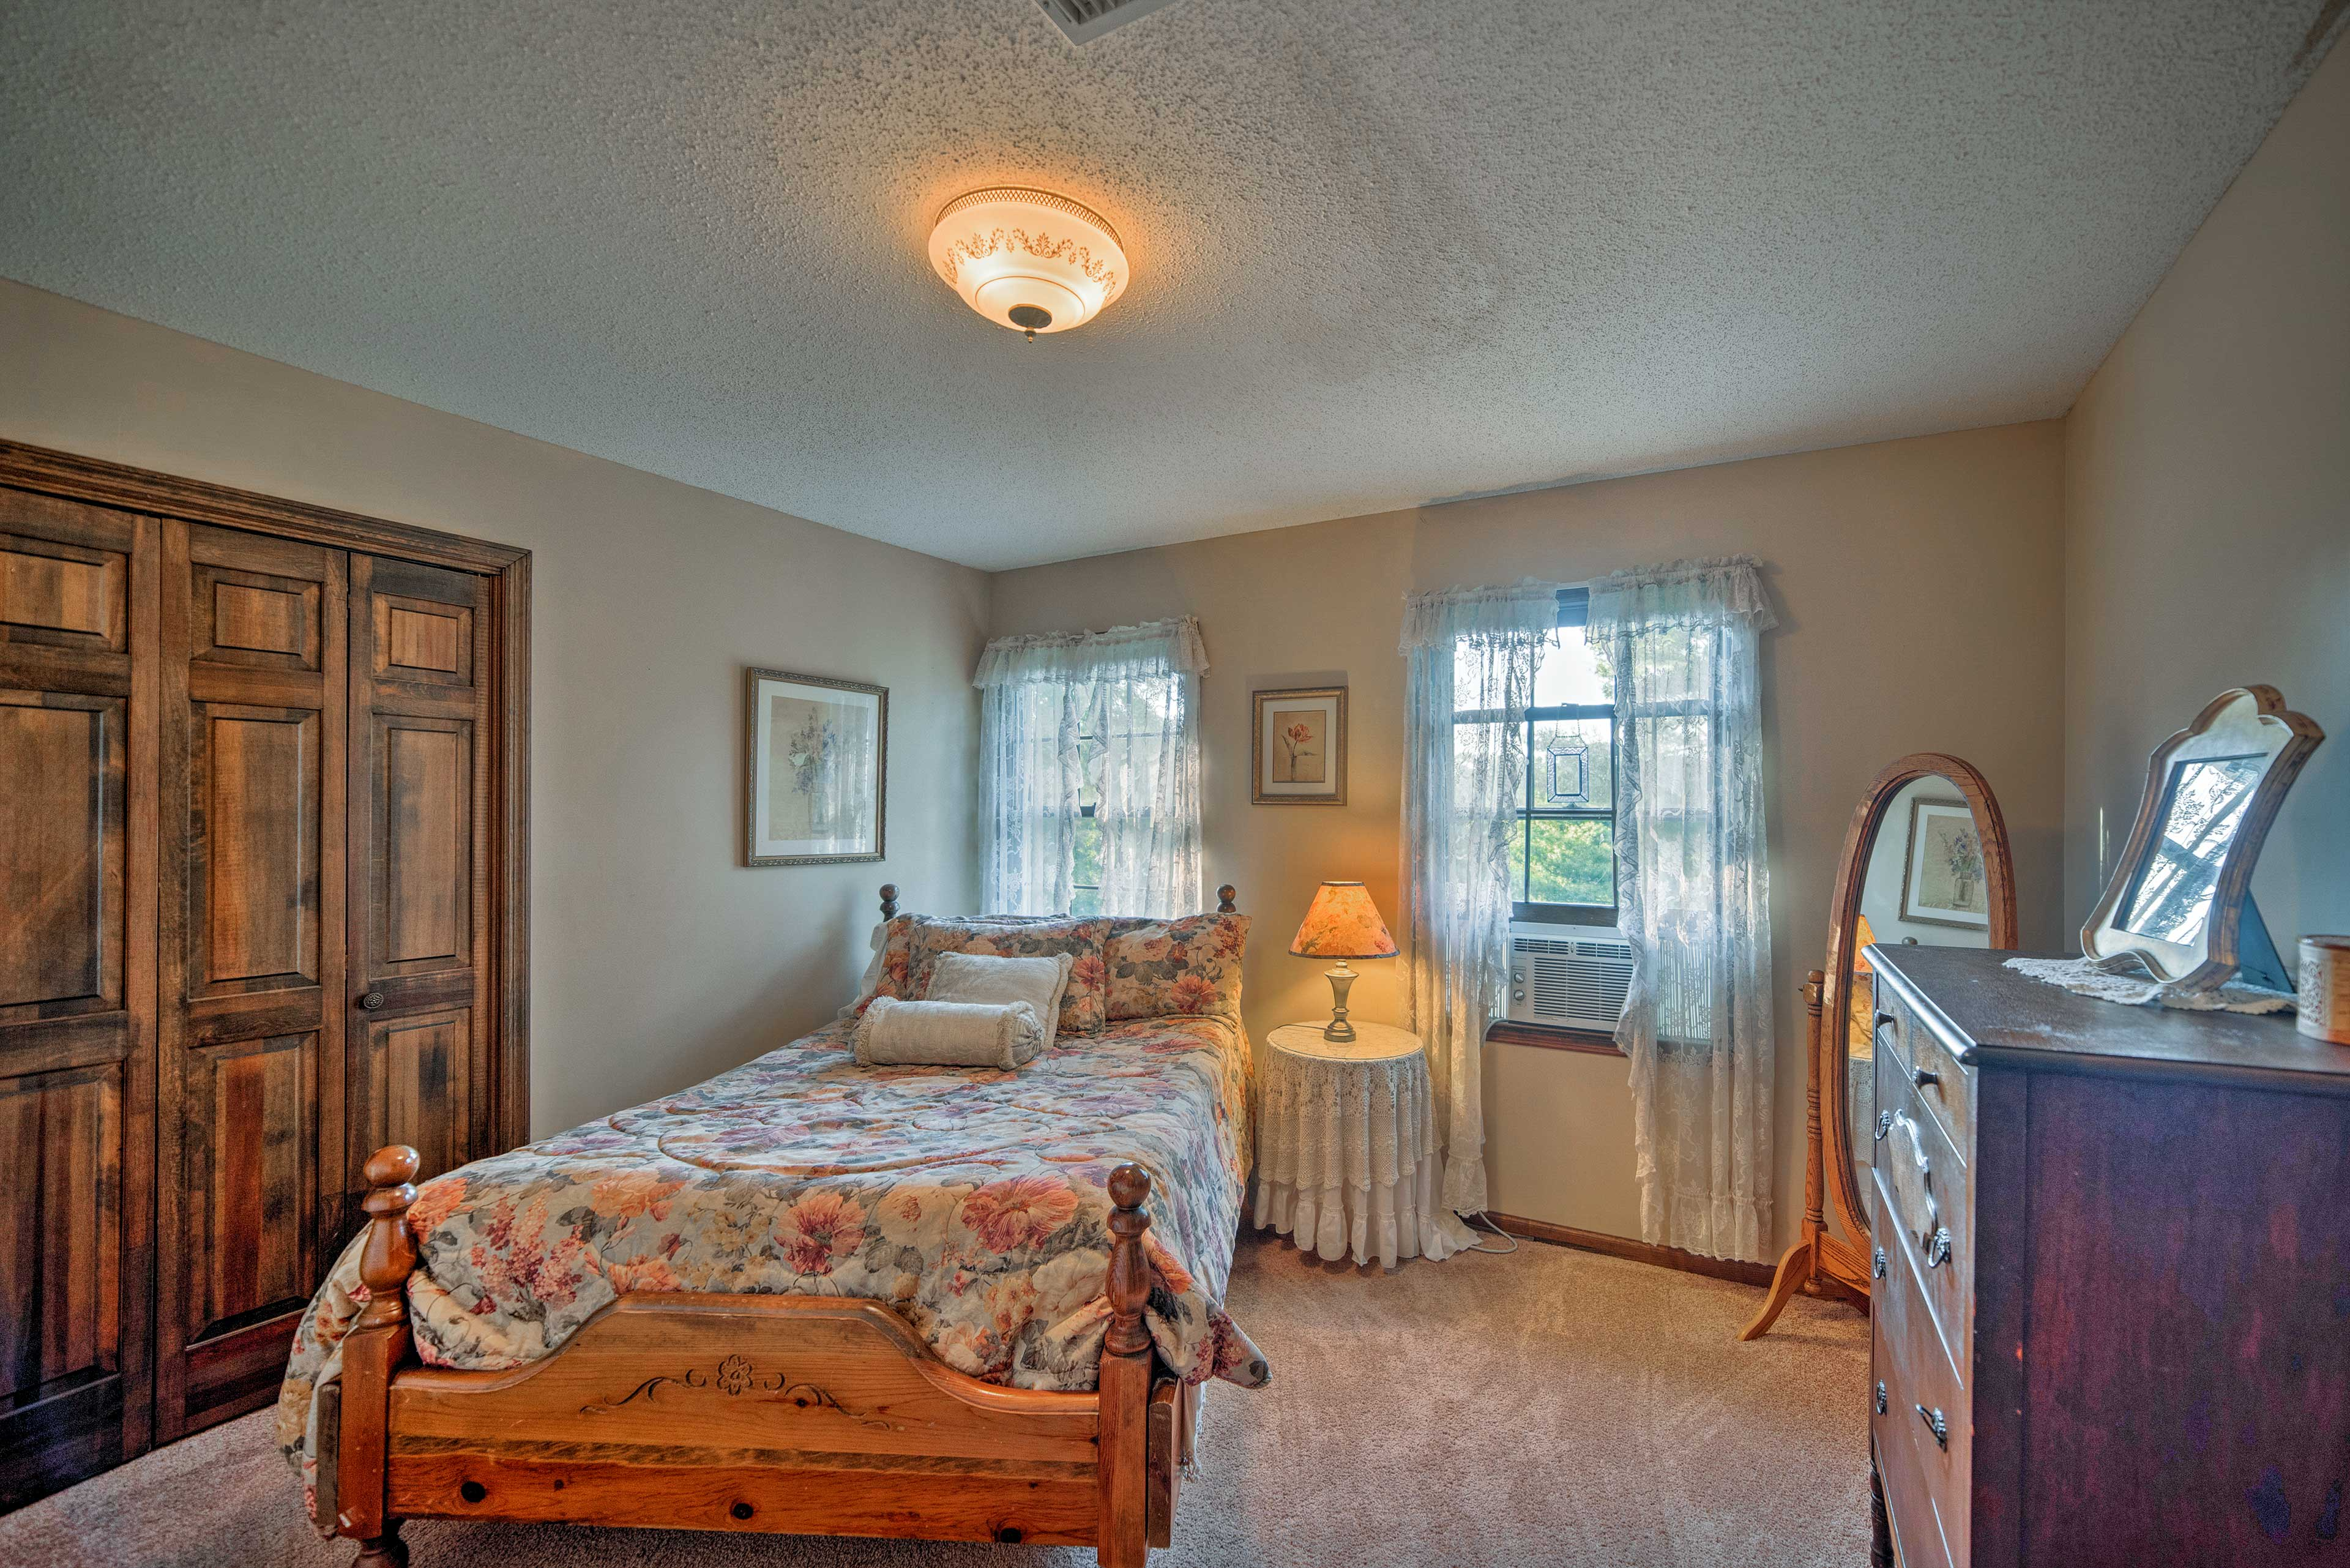 The second bedroom has a comfortable full bed.